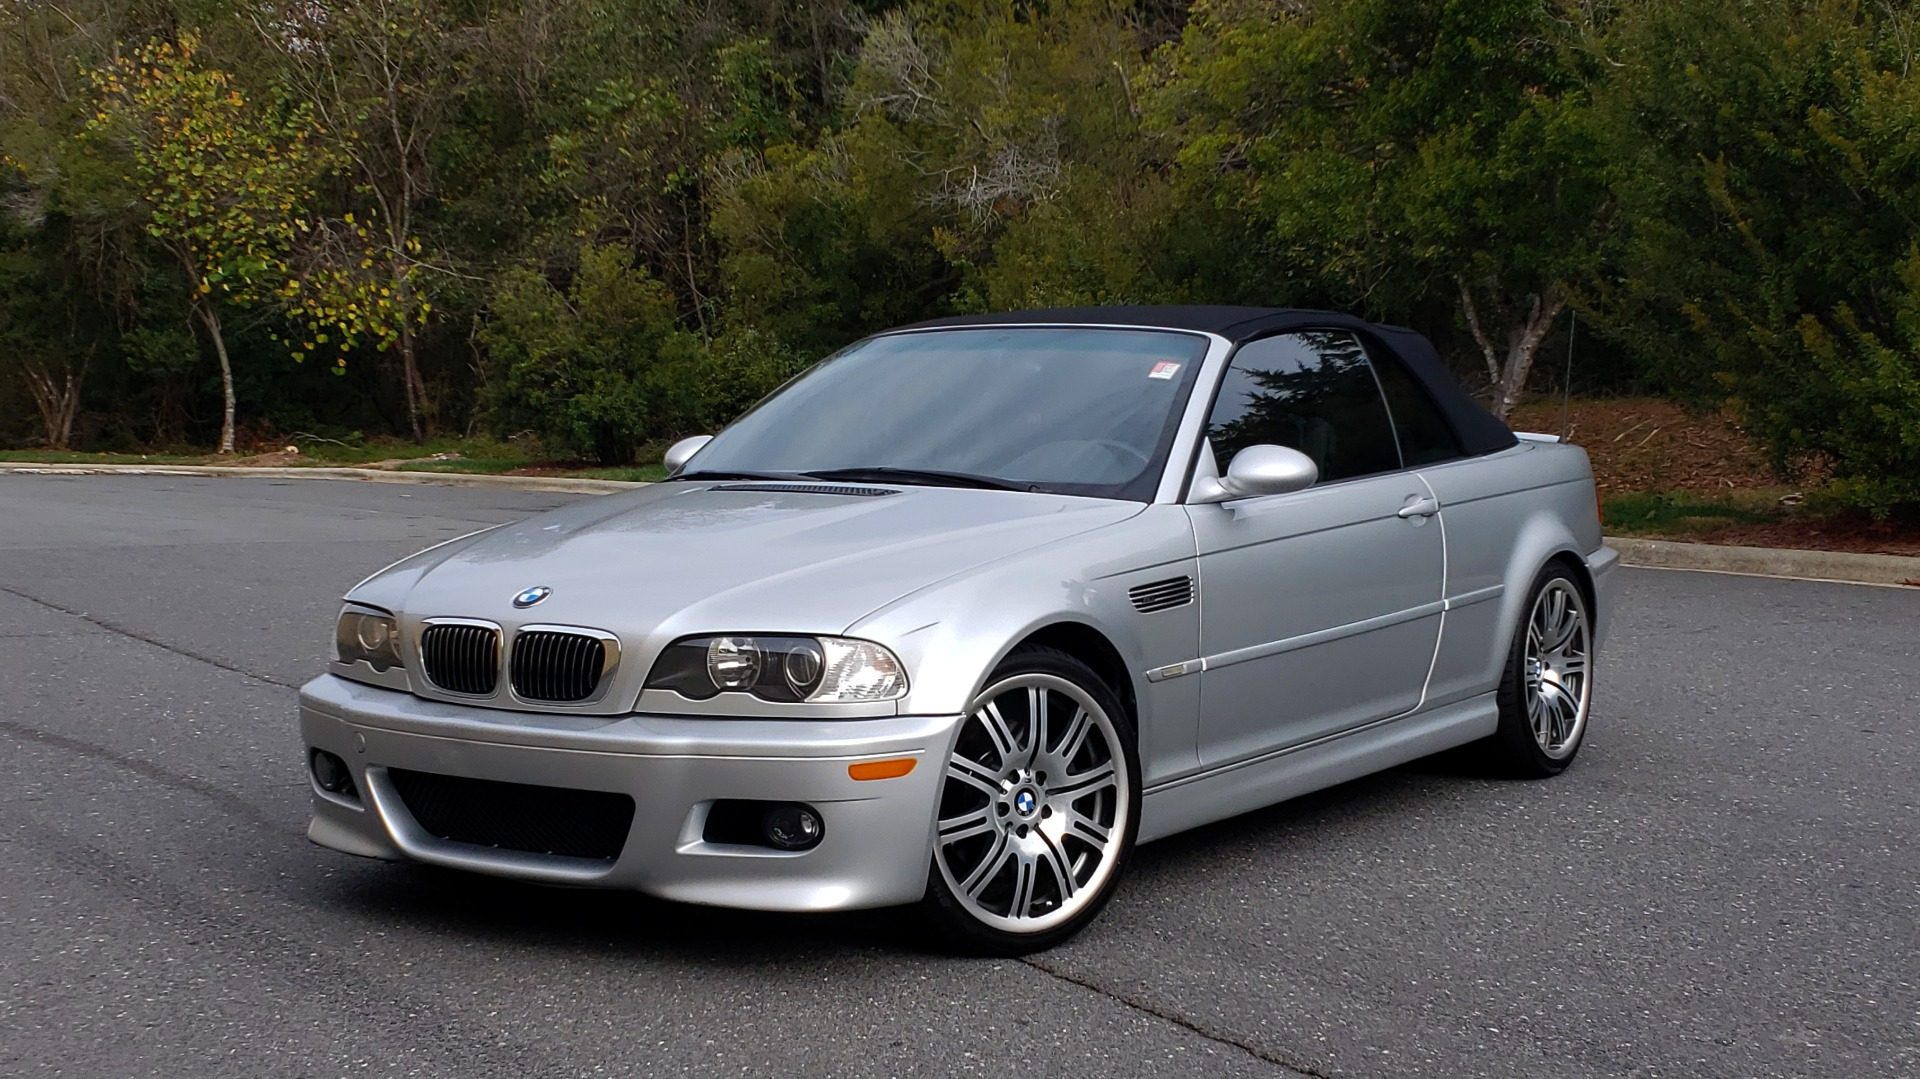 Used 2002 BMW M3 CONVERTIBLE / 6-SPD MAN / XENON / 19IN WHEELS for sale Sold at Formula Imports in Charlotte NC 28227 2